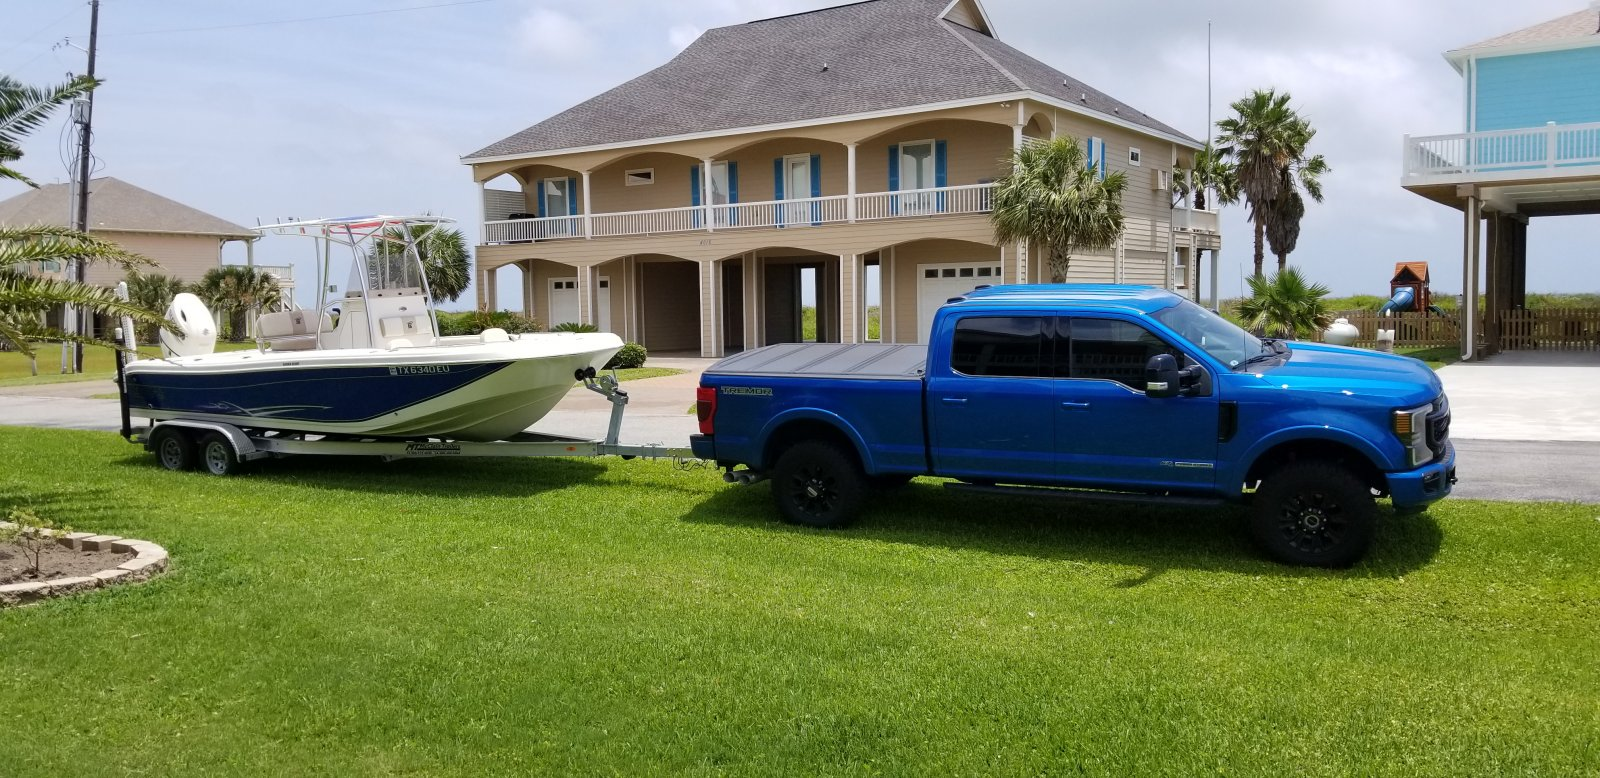 truck and boat.jpg